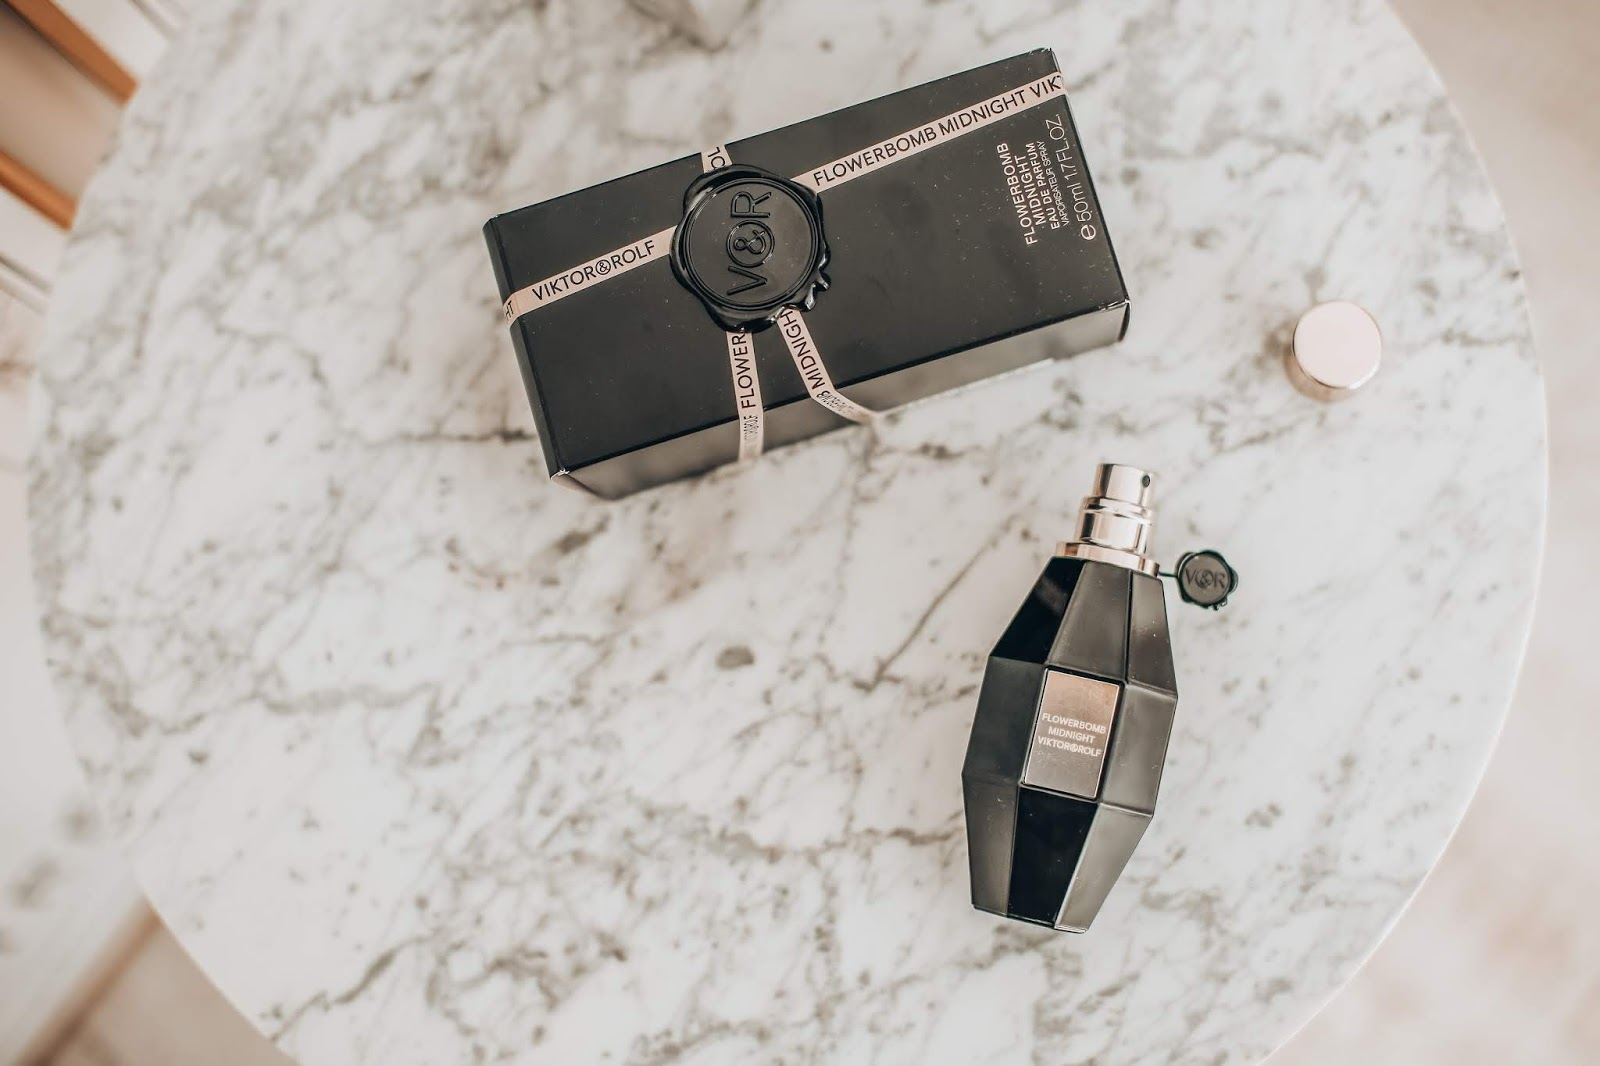 Flowerbomb midnight by Viktor & Rolf